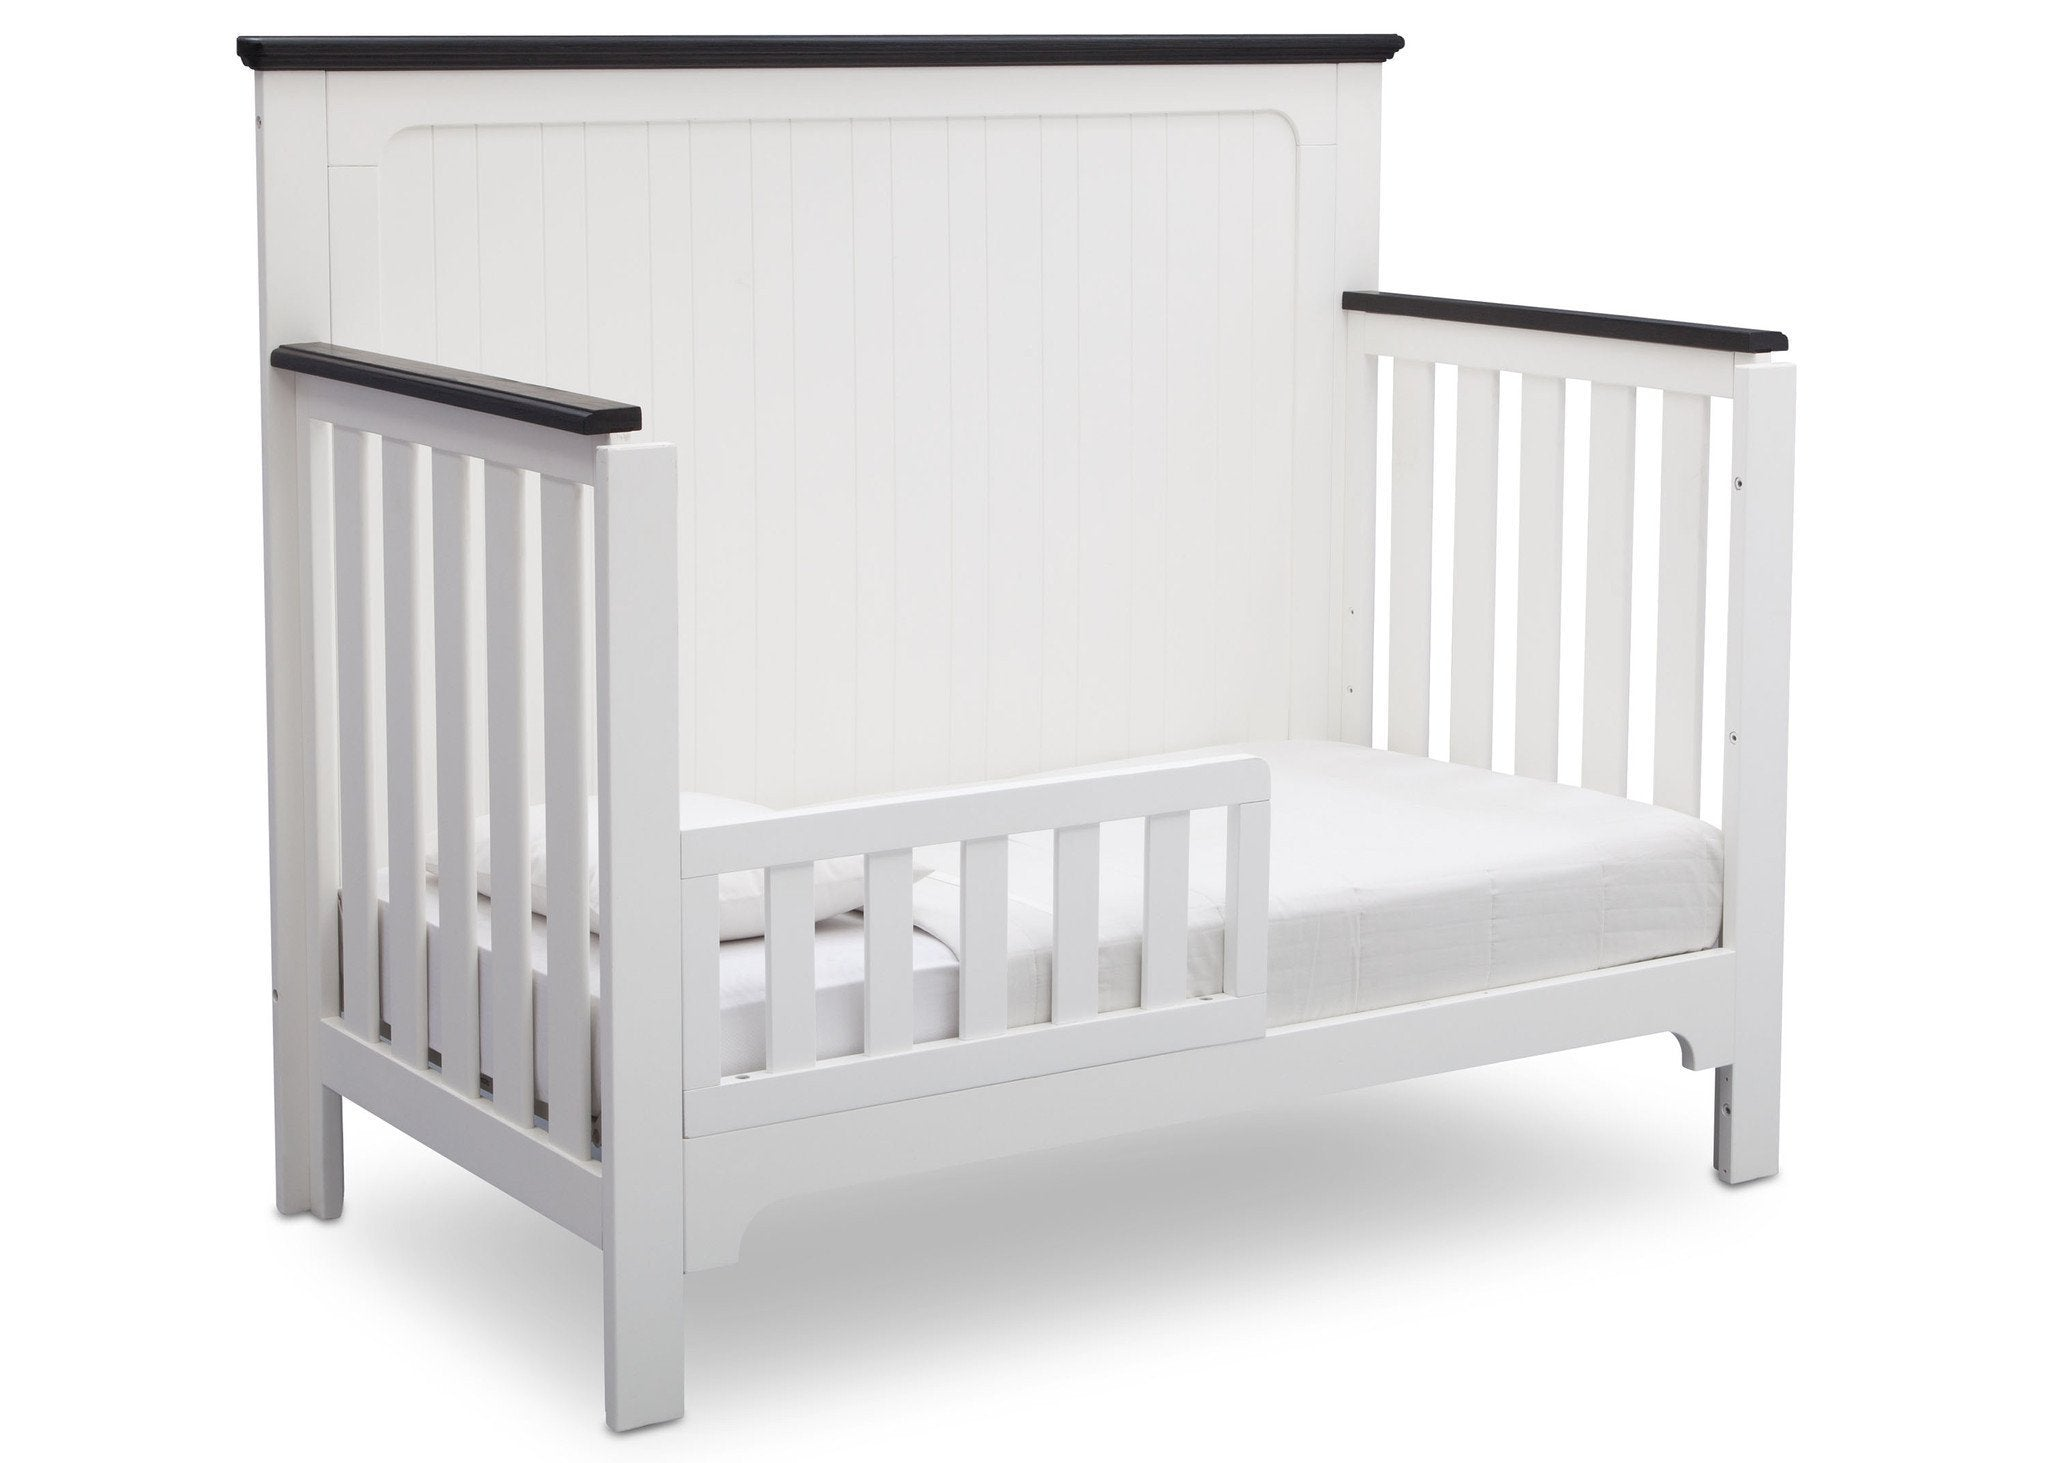 Delta Children Bianca with Rustic Ebony (135) Providence 4-in-1 Crib, Toddler Bed Conversion a5a